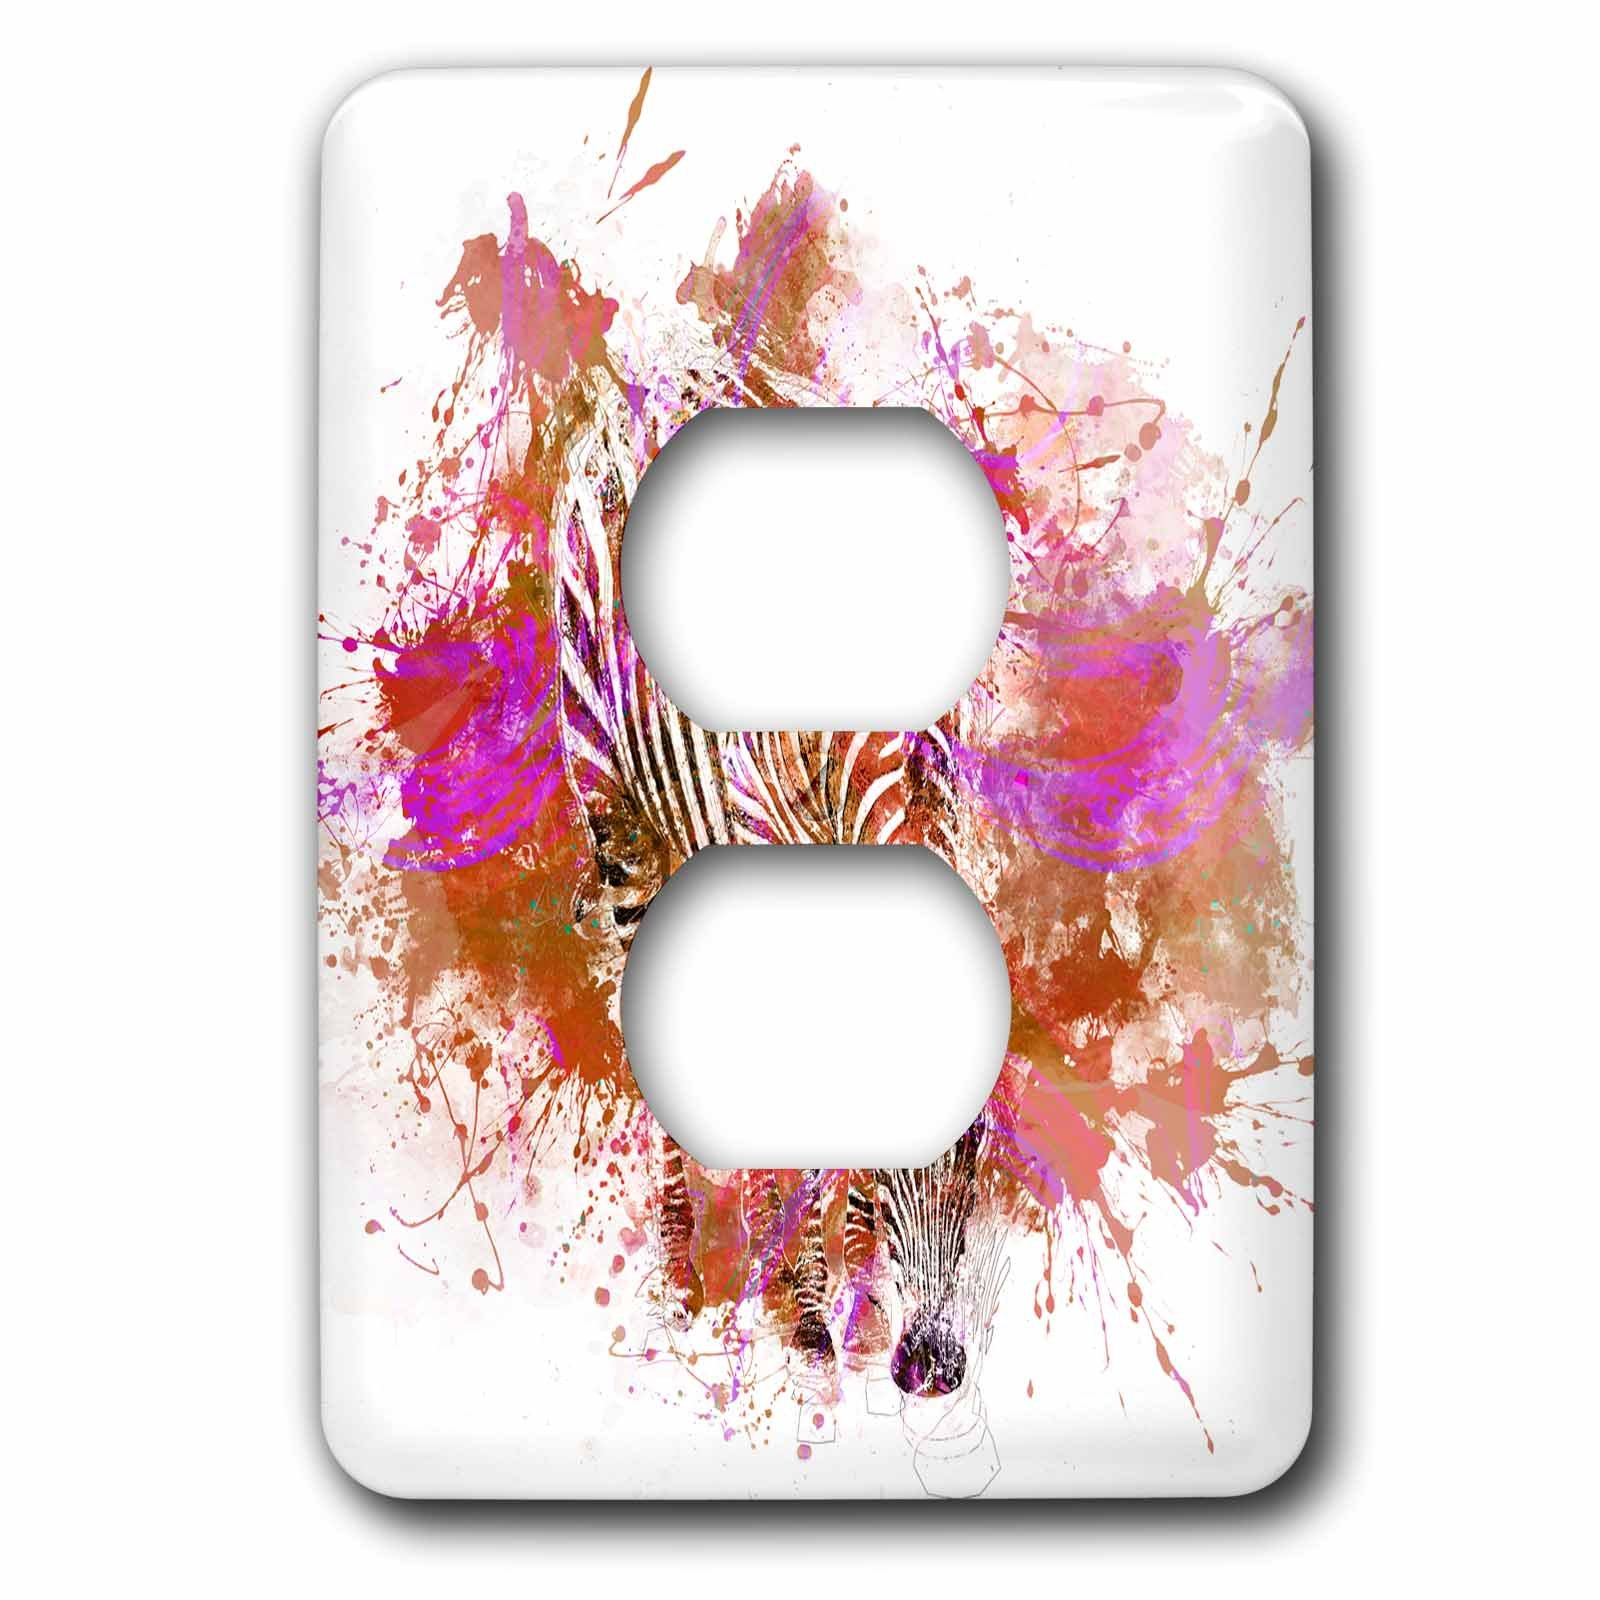 3dRose Andrea Haase Animals Illustration - Modern cool colorful zebra artwork with paint splatter in pink and orange - Light Switch Covers - 2 plug outlet cover (lsp_266497_6)